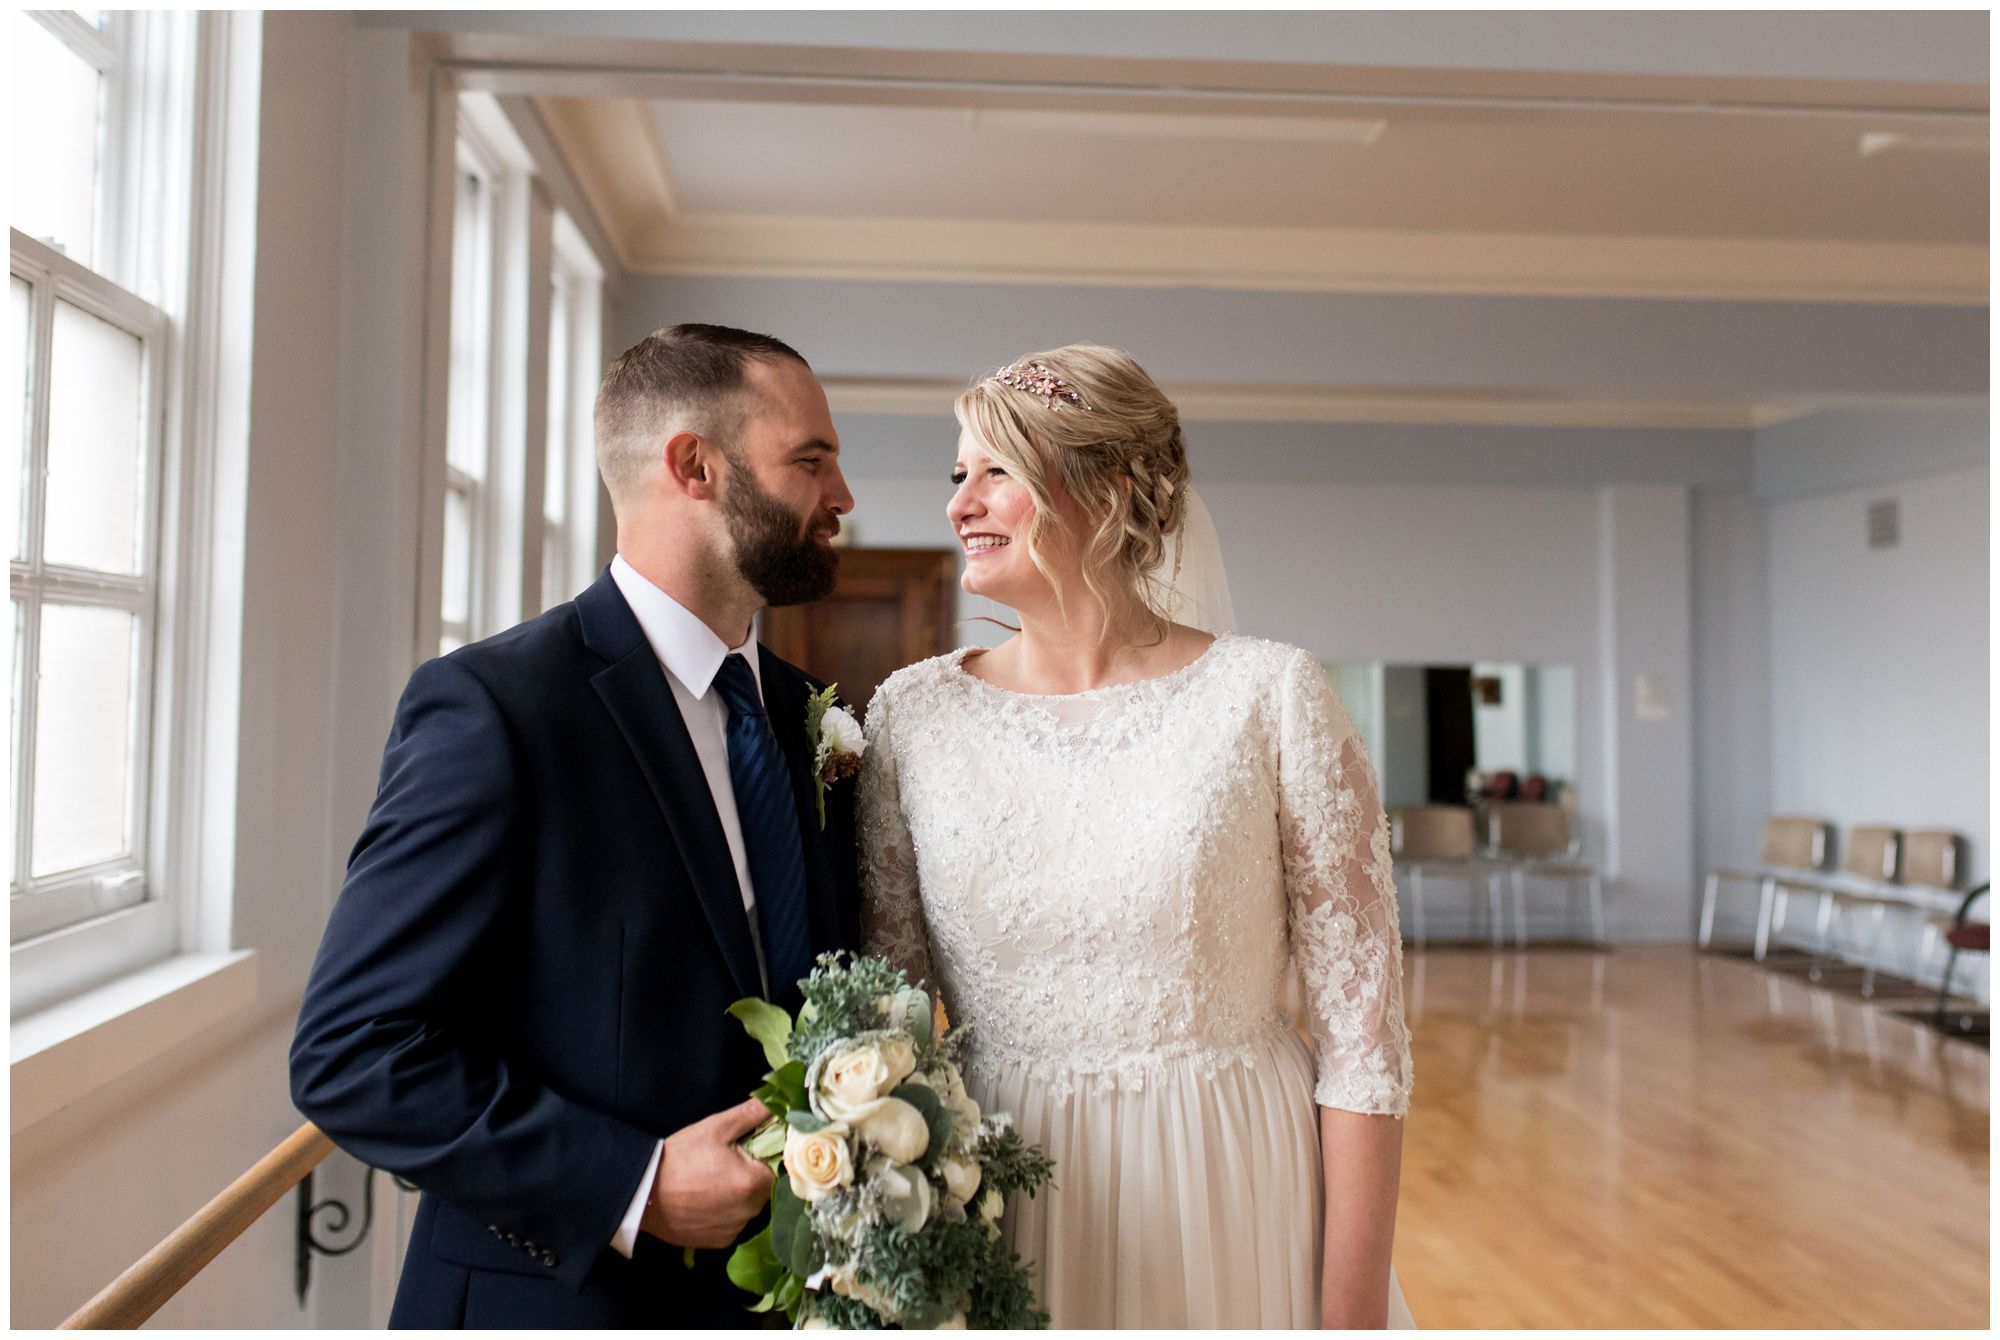 bride and groom portraits at Cornerstone Center for the Arts in Muncie Indiana